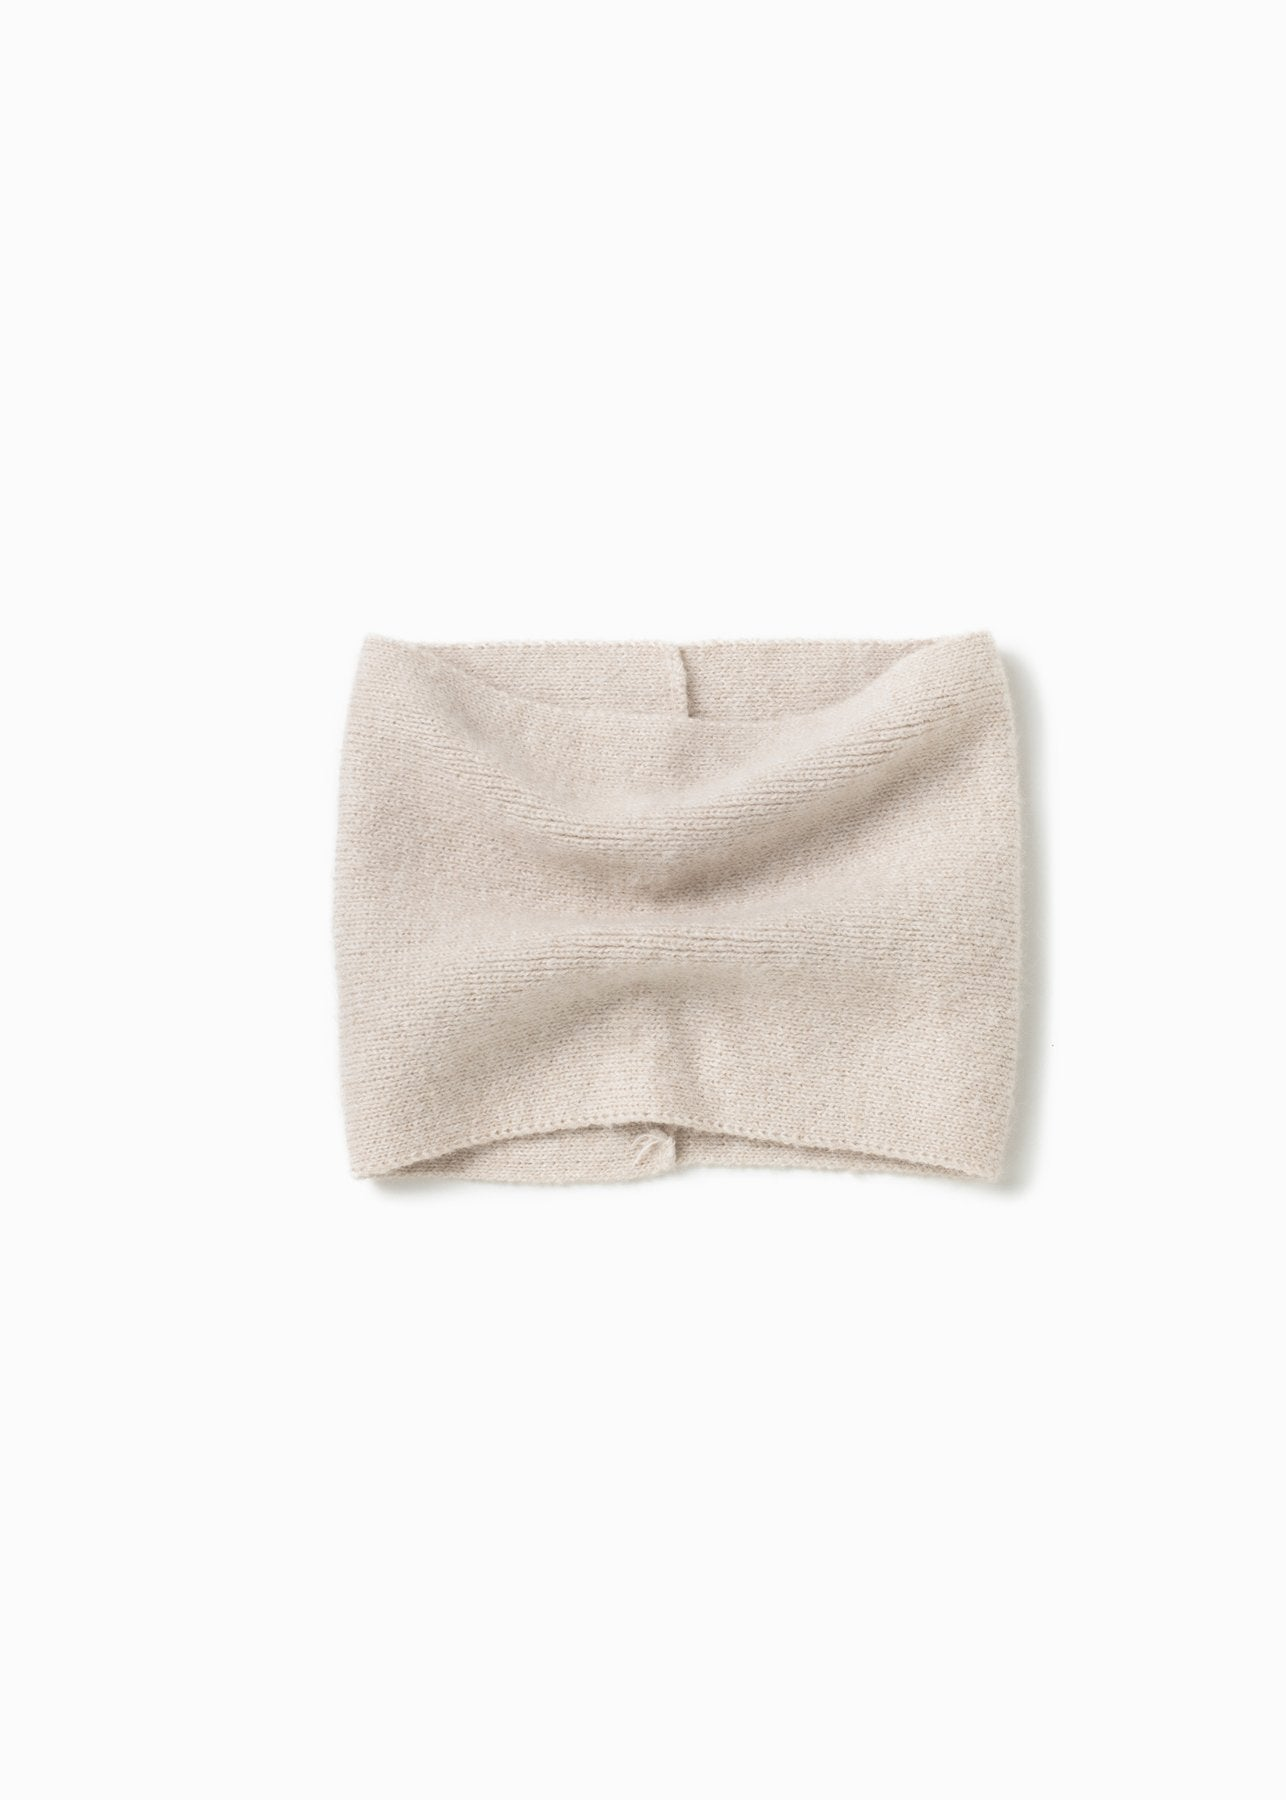 Basic Neck Warmer in Ivory